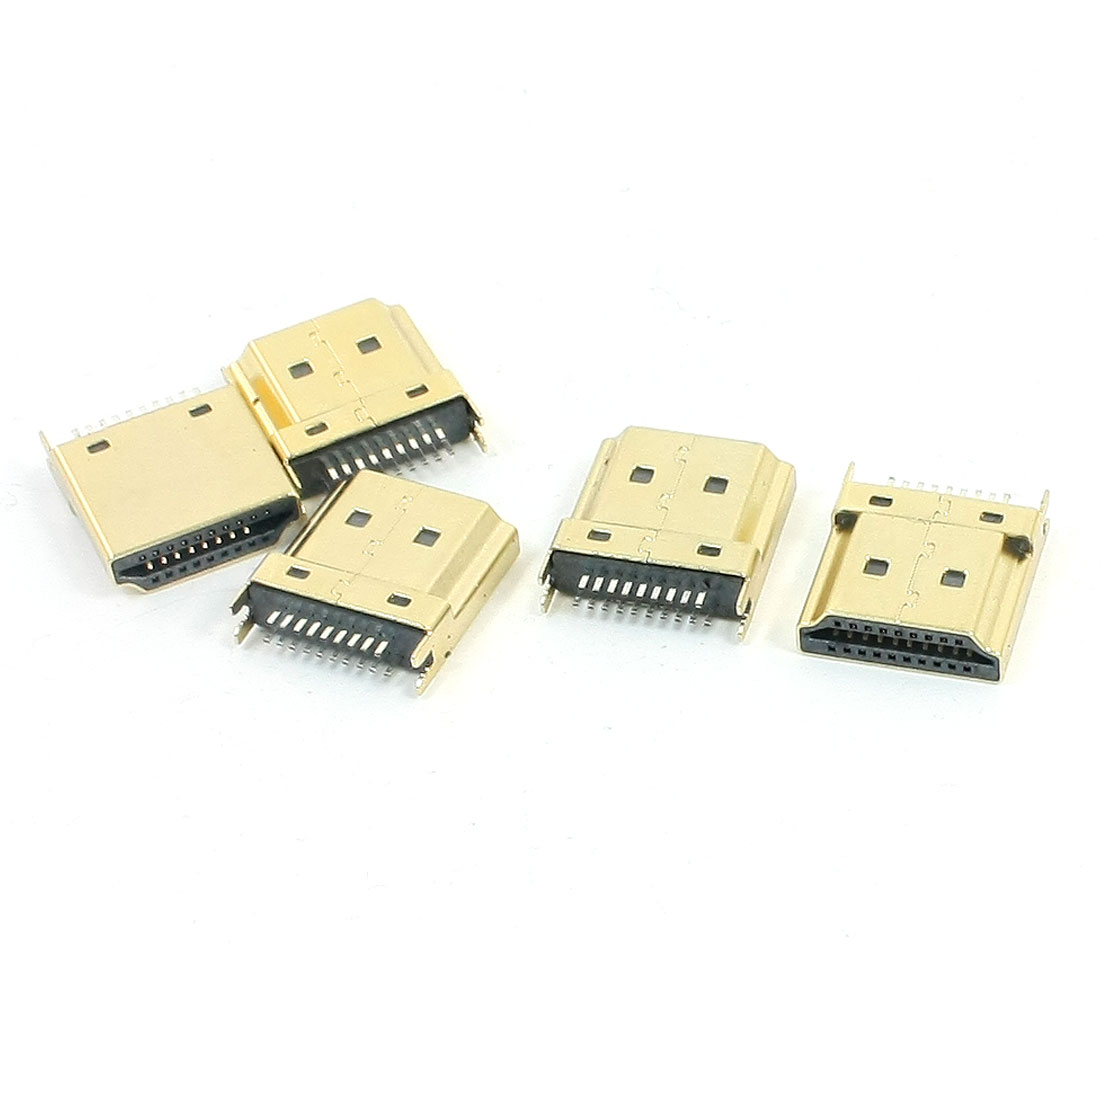 5Pcs 1.2mm Splint Gap Gold Tone Mini HDMI Male 19 Pins SMT DIP Connectors